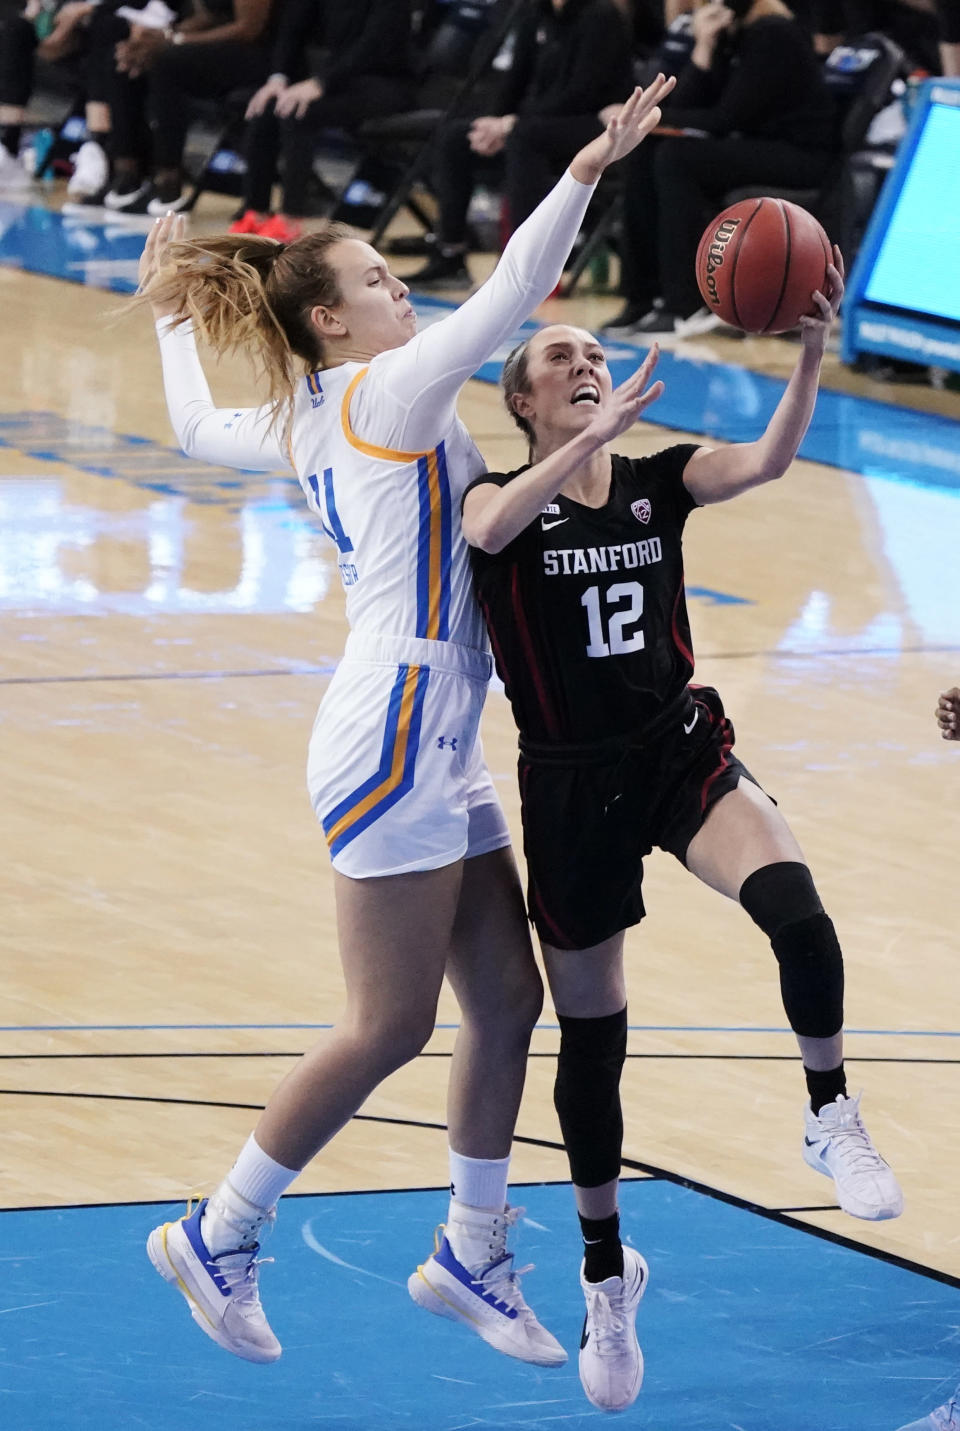 Stanford guard Lexie Hull (12) drives to the basket as UCLA forward Emily Bessoir defends during the first half of an NCAA college basketball game Monday, Dec. 21, 2020, in Los Angeles. (AP Photo/Marcio Jose Sanchez)